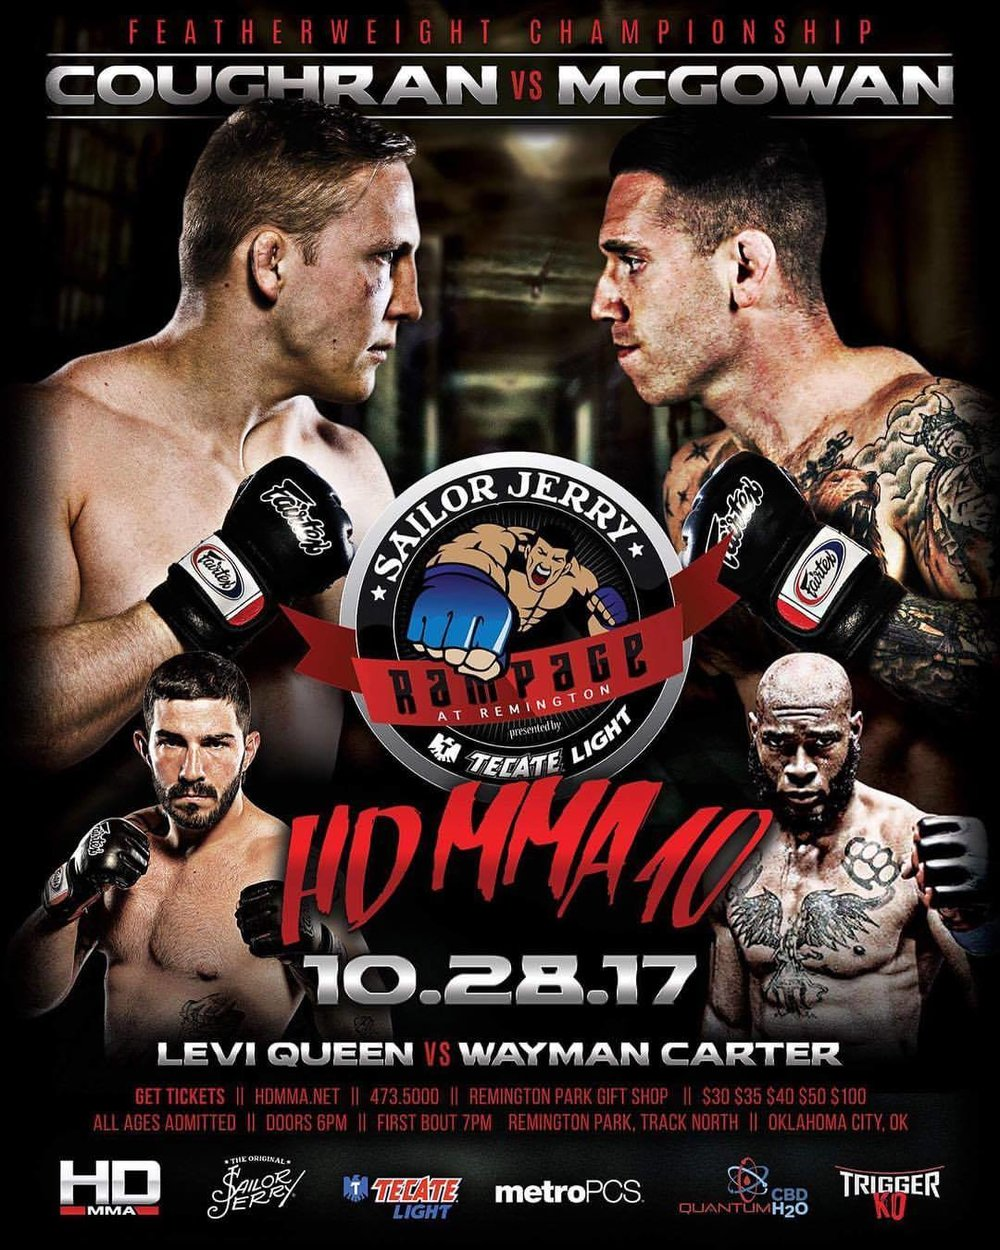 HD MMA 10: COUGHRAN VS MCGOWAN - OCT 28, 2017  REMINGTON PARK CASINO, OKC